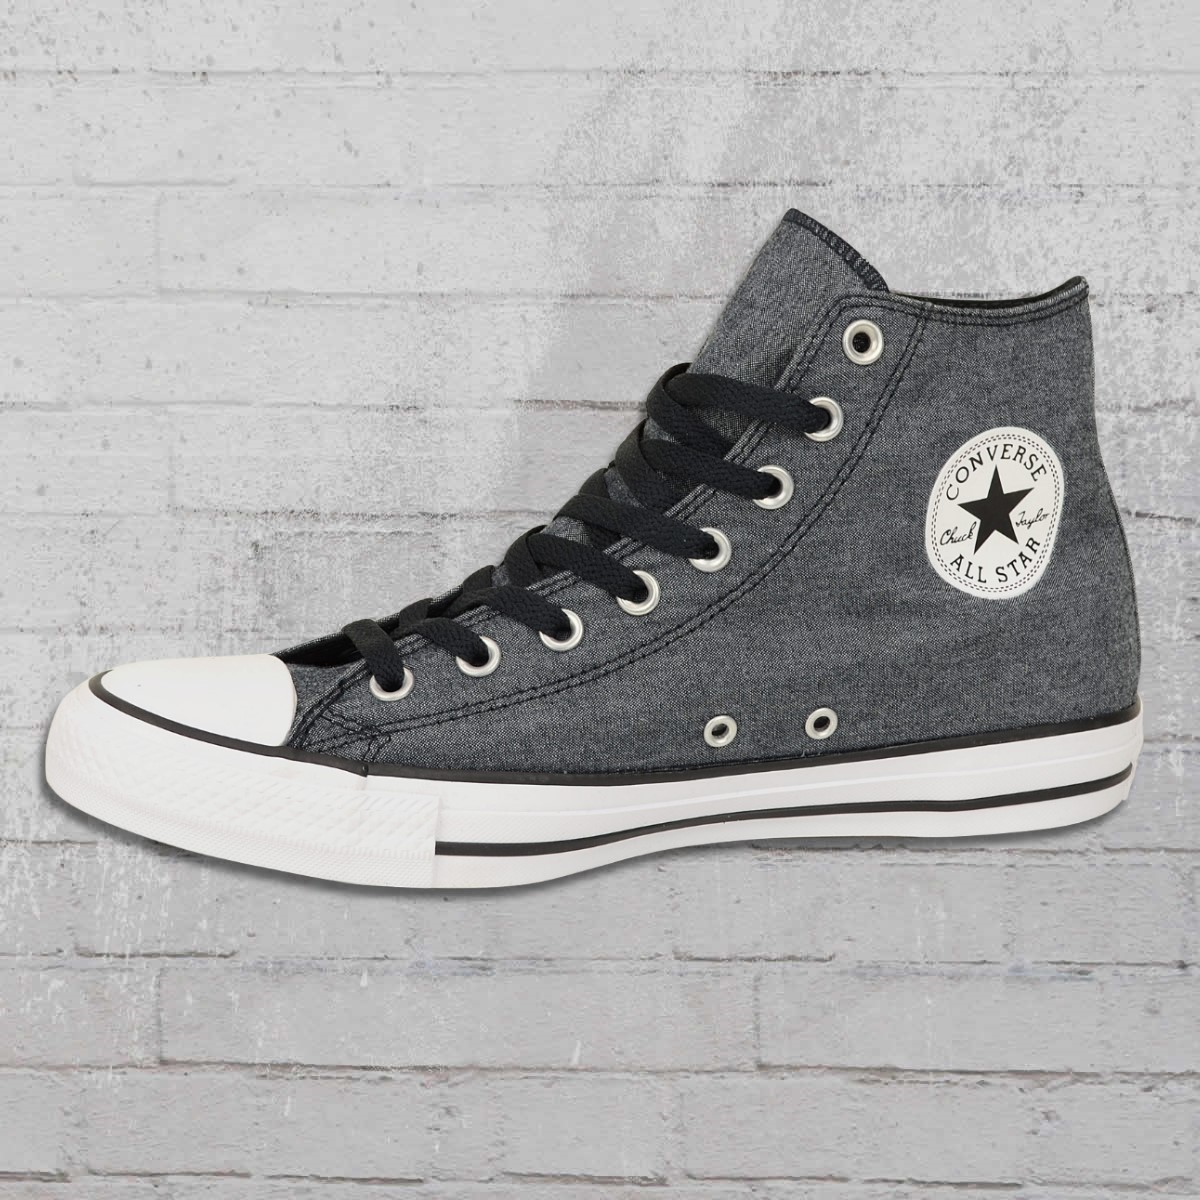 reputable site 52488 f992a chucks converse grau